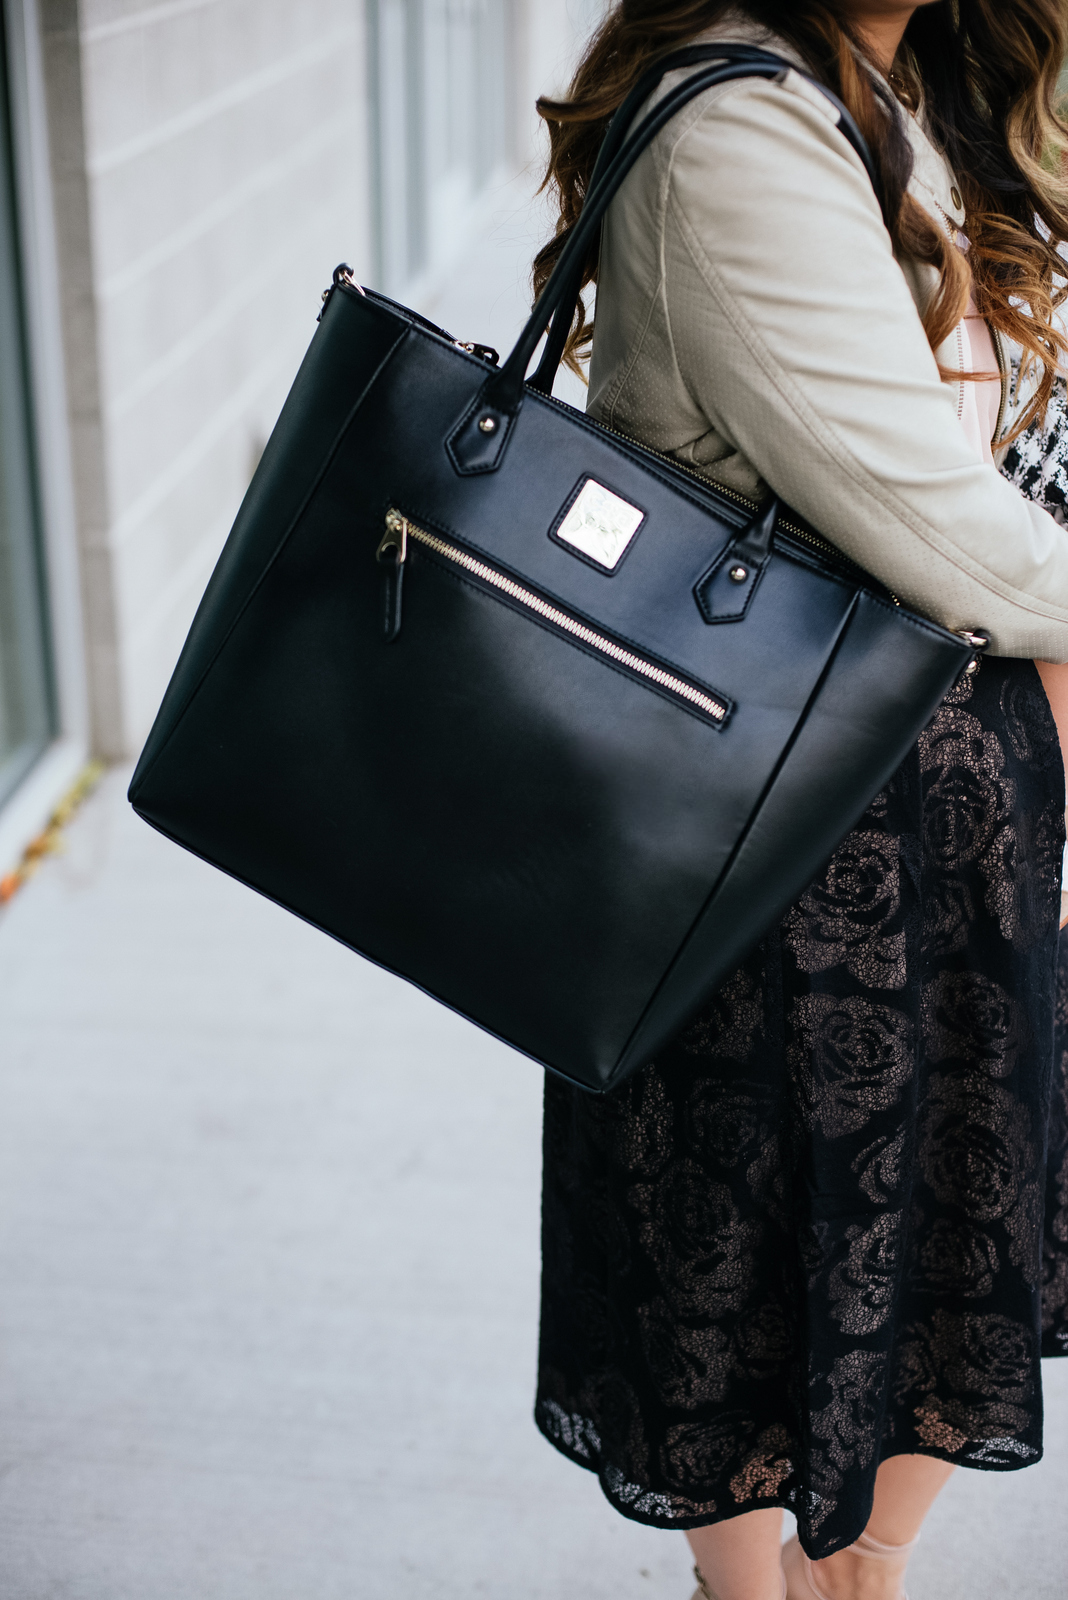 Mom wearing Charlotte and Asher diaper bag